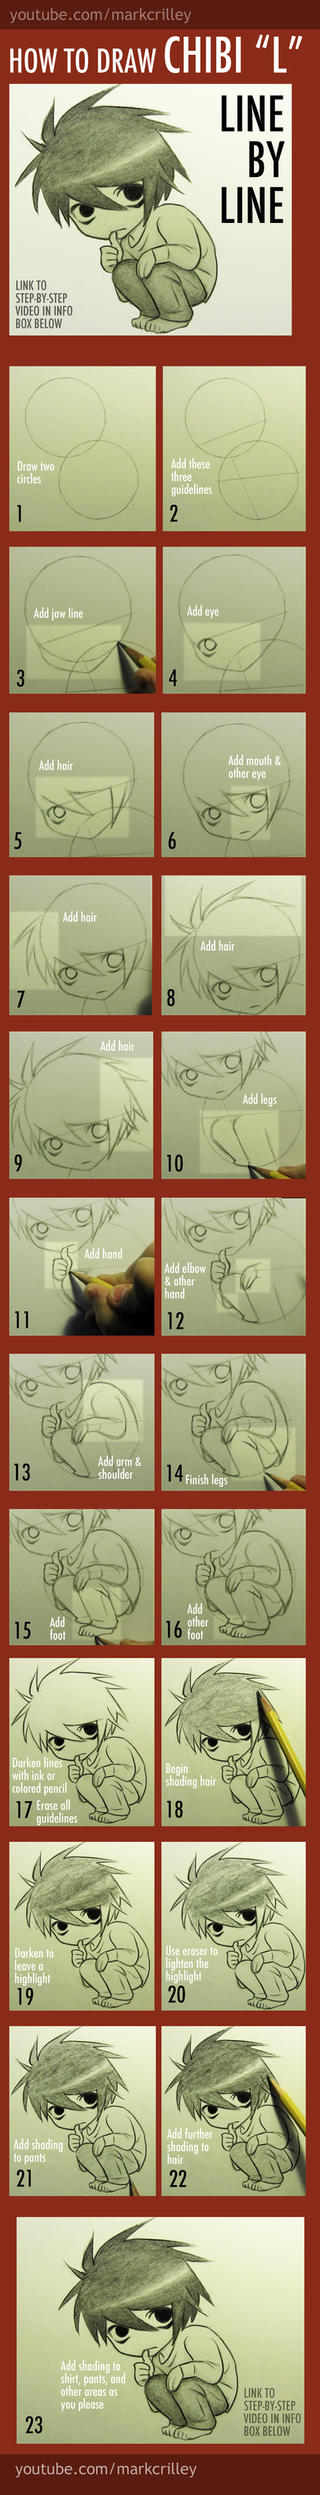 How to Draw Chibi L from Death Note by markcrilley